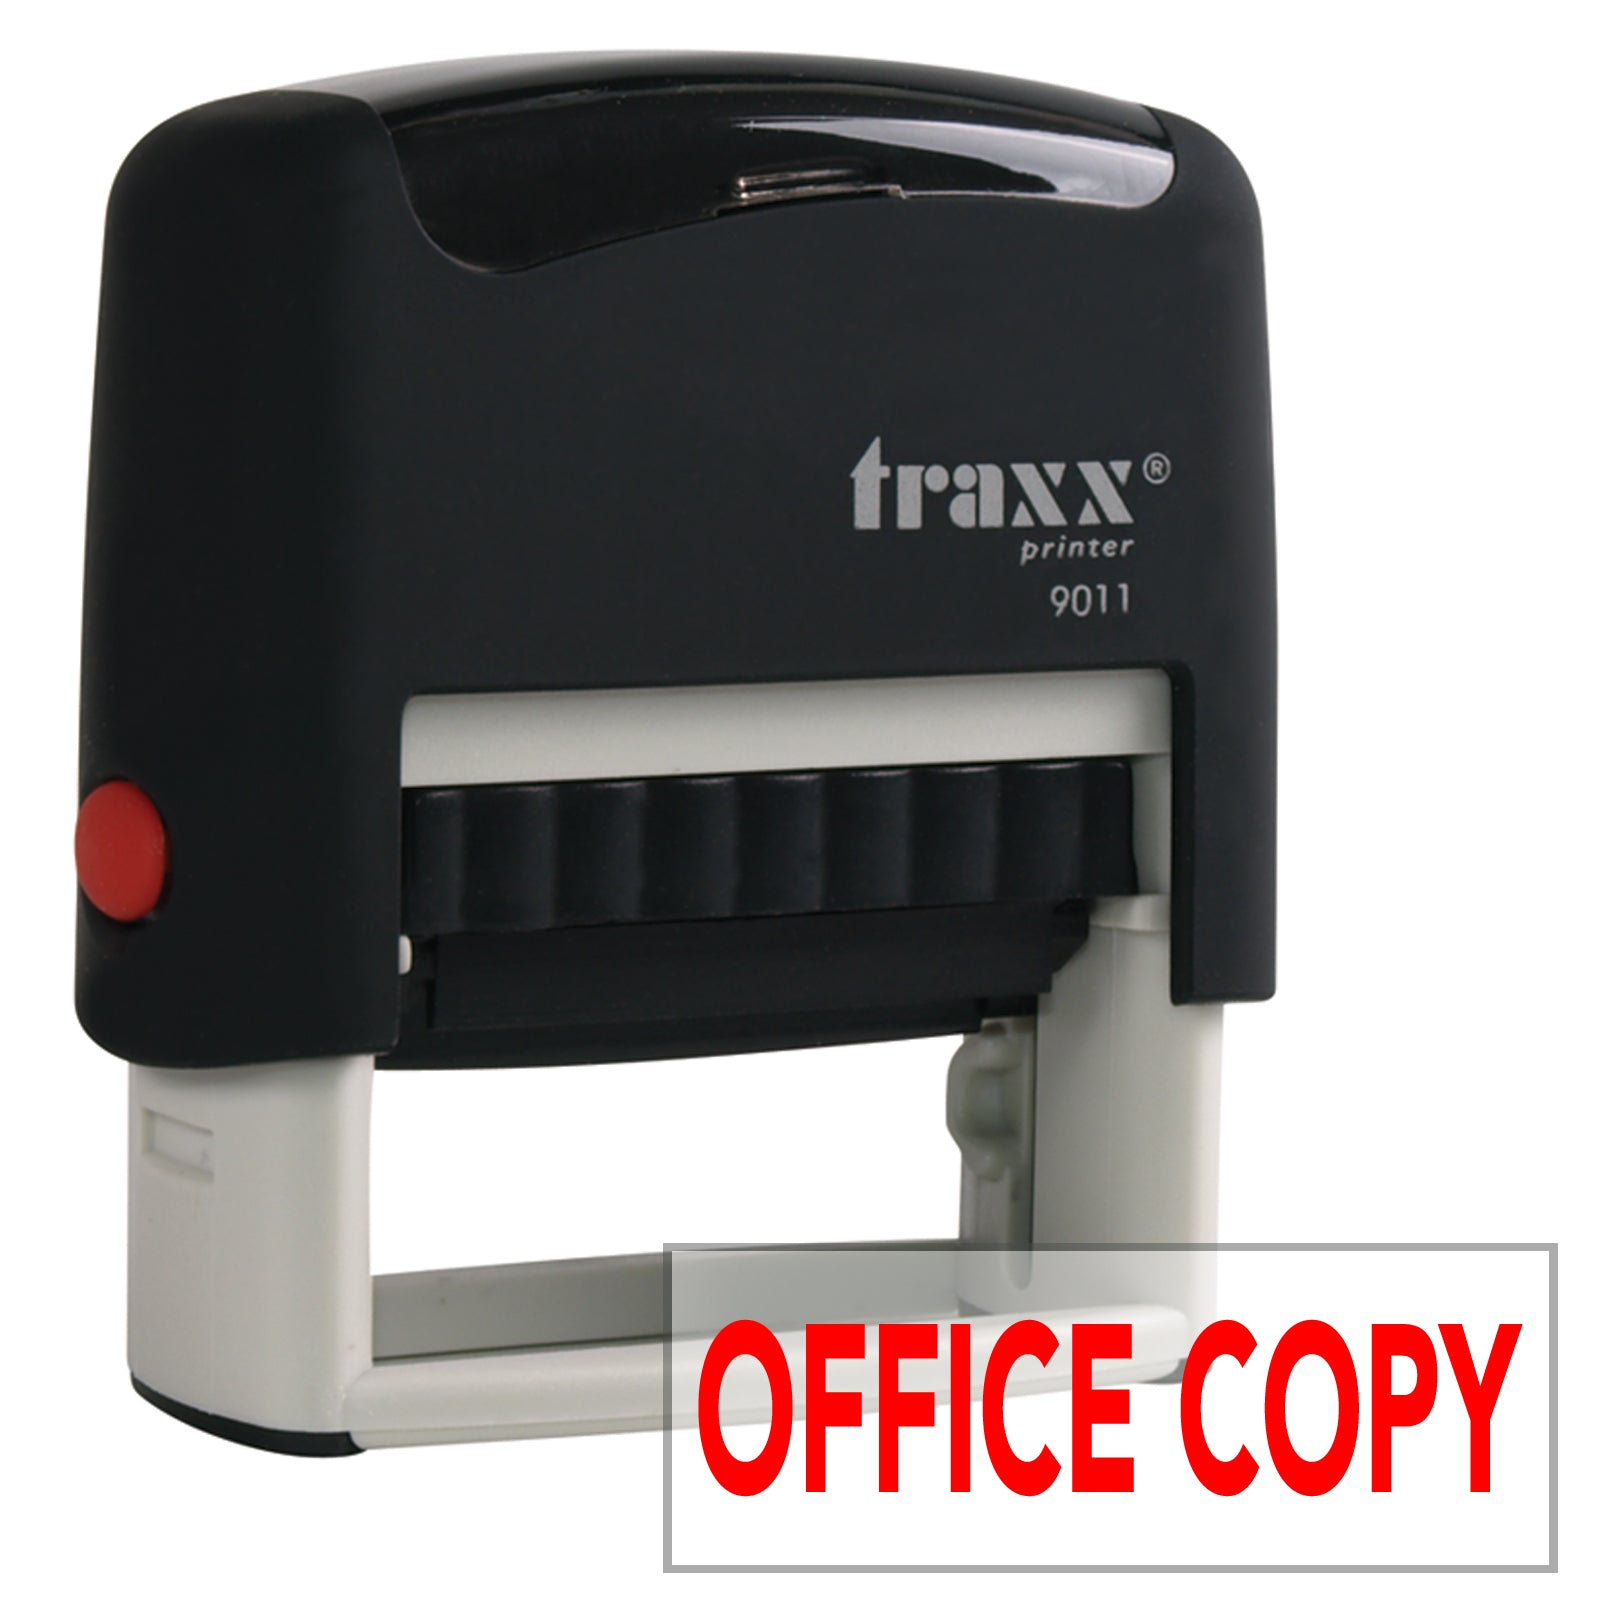 Traxx 9011 38 x 14mm Word Stamp - OFFICE COPY